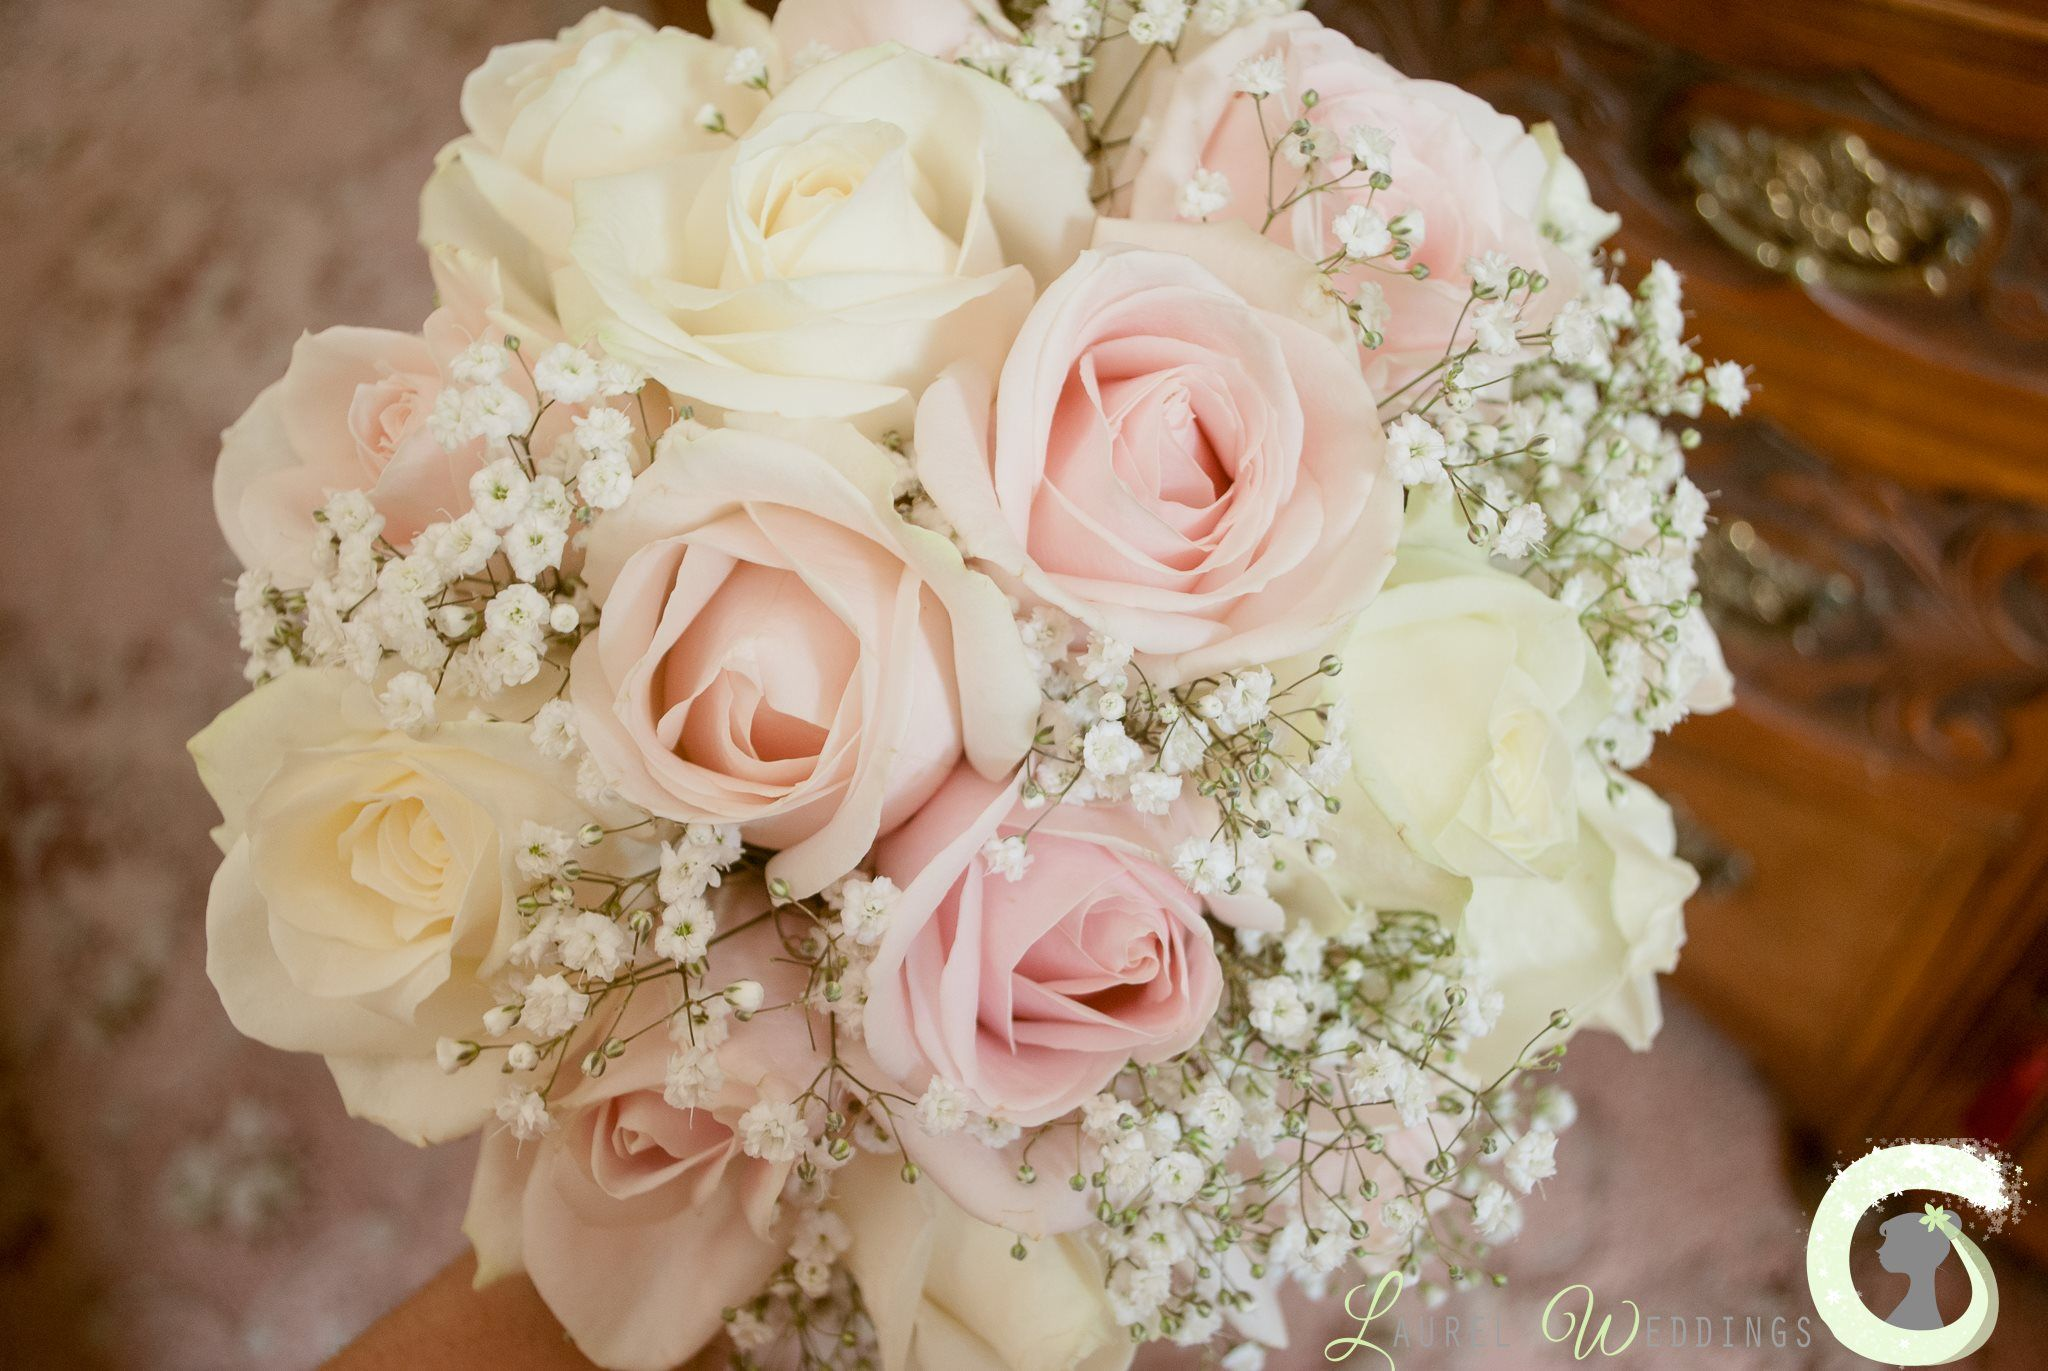 Bouquet Sposa Rose Rosa.Roses And Gypsophila Bouquet In Ivory And Blush Pink Wedding